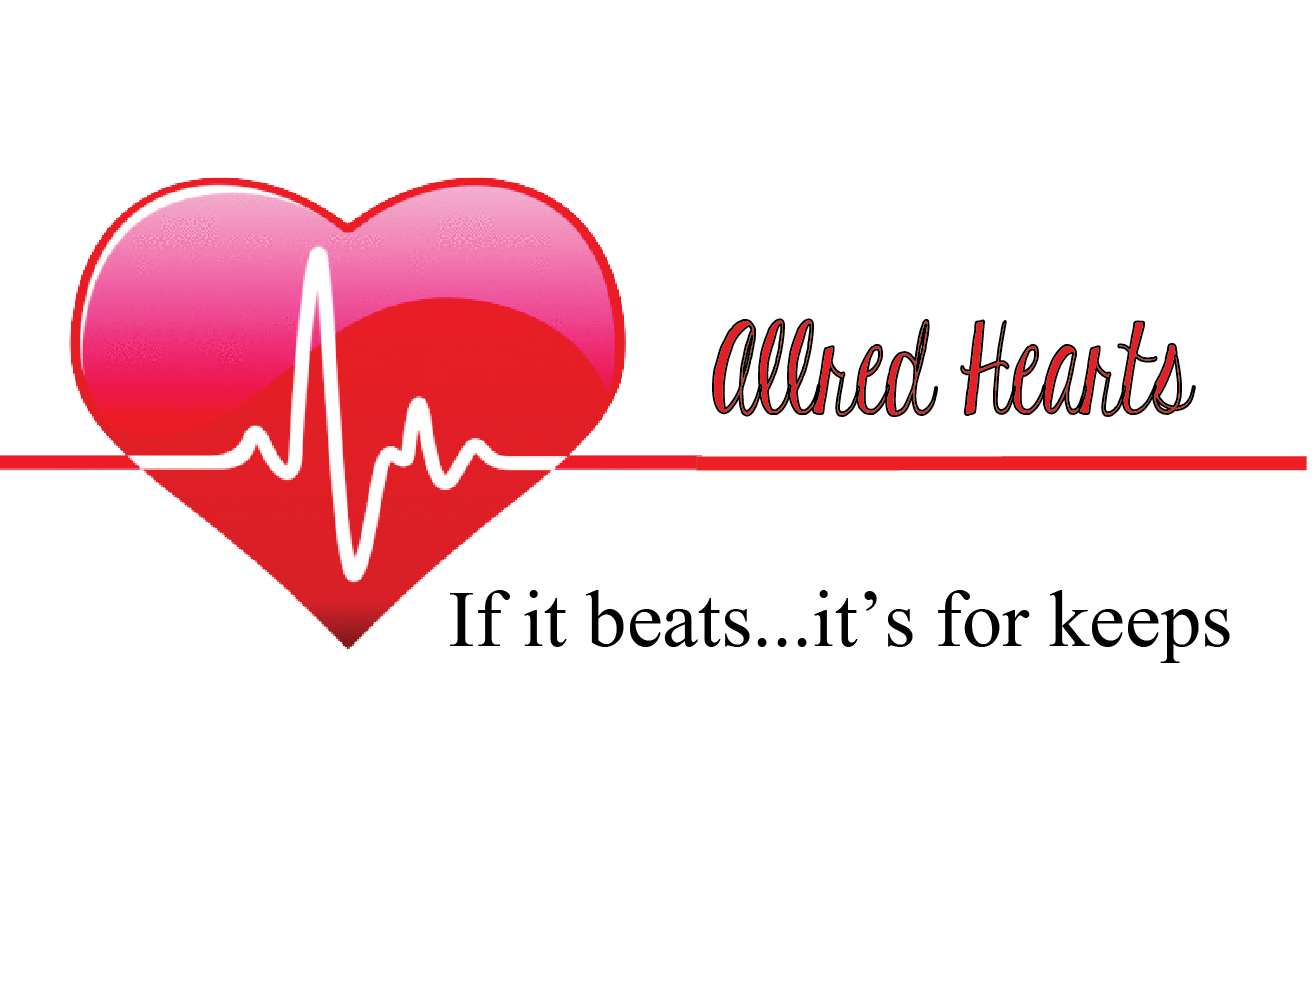 Donate to Allred Hearts